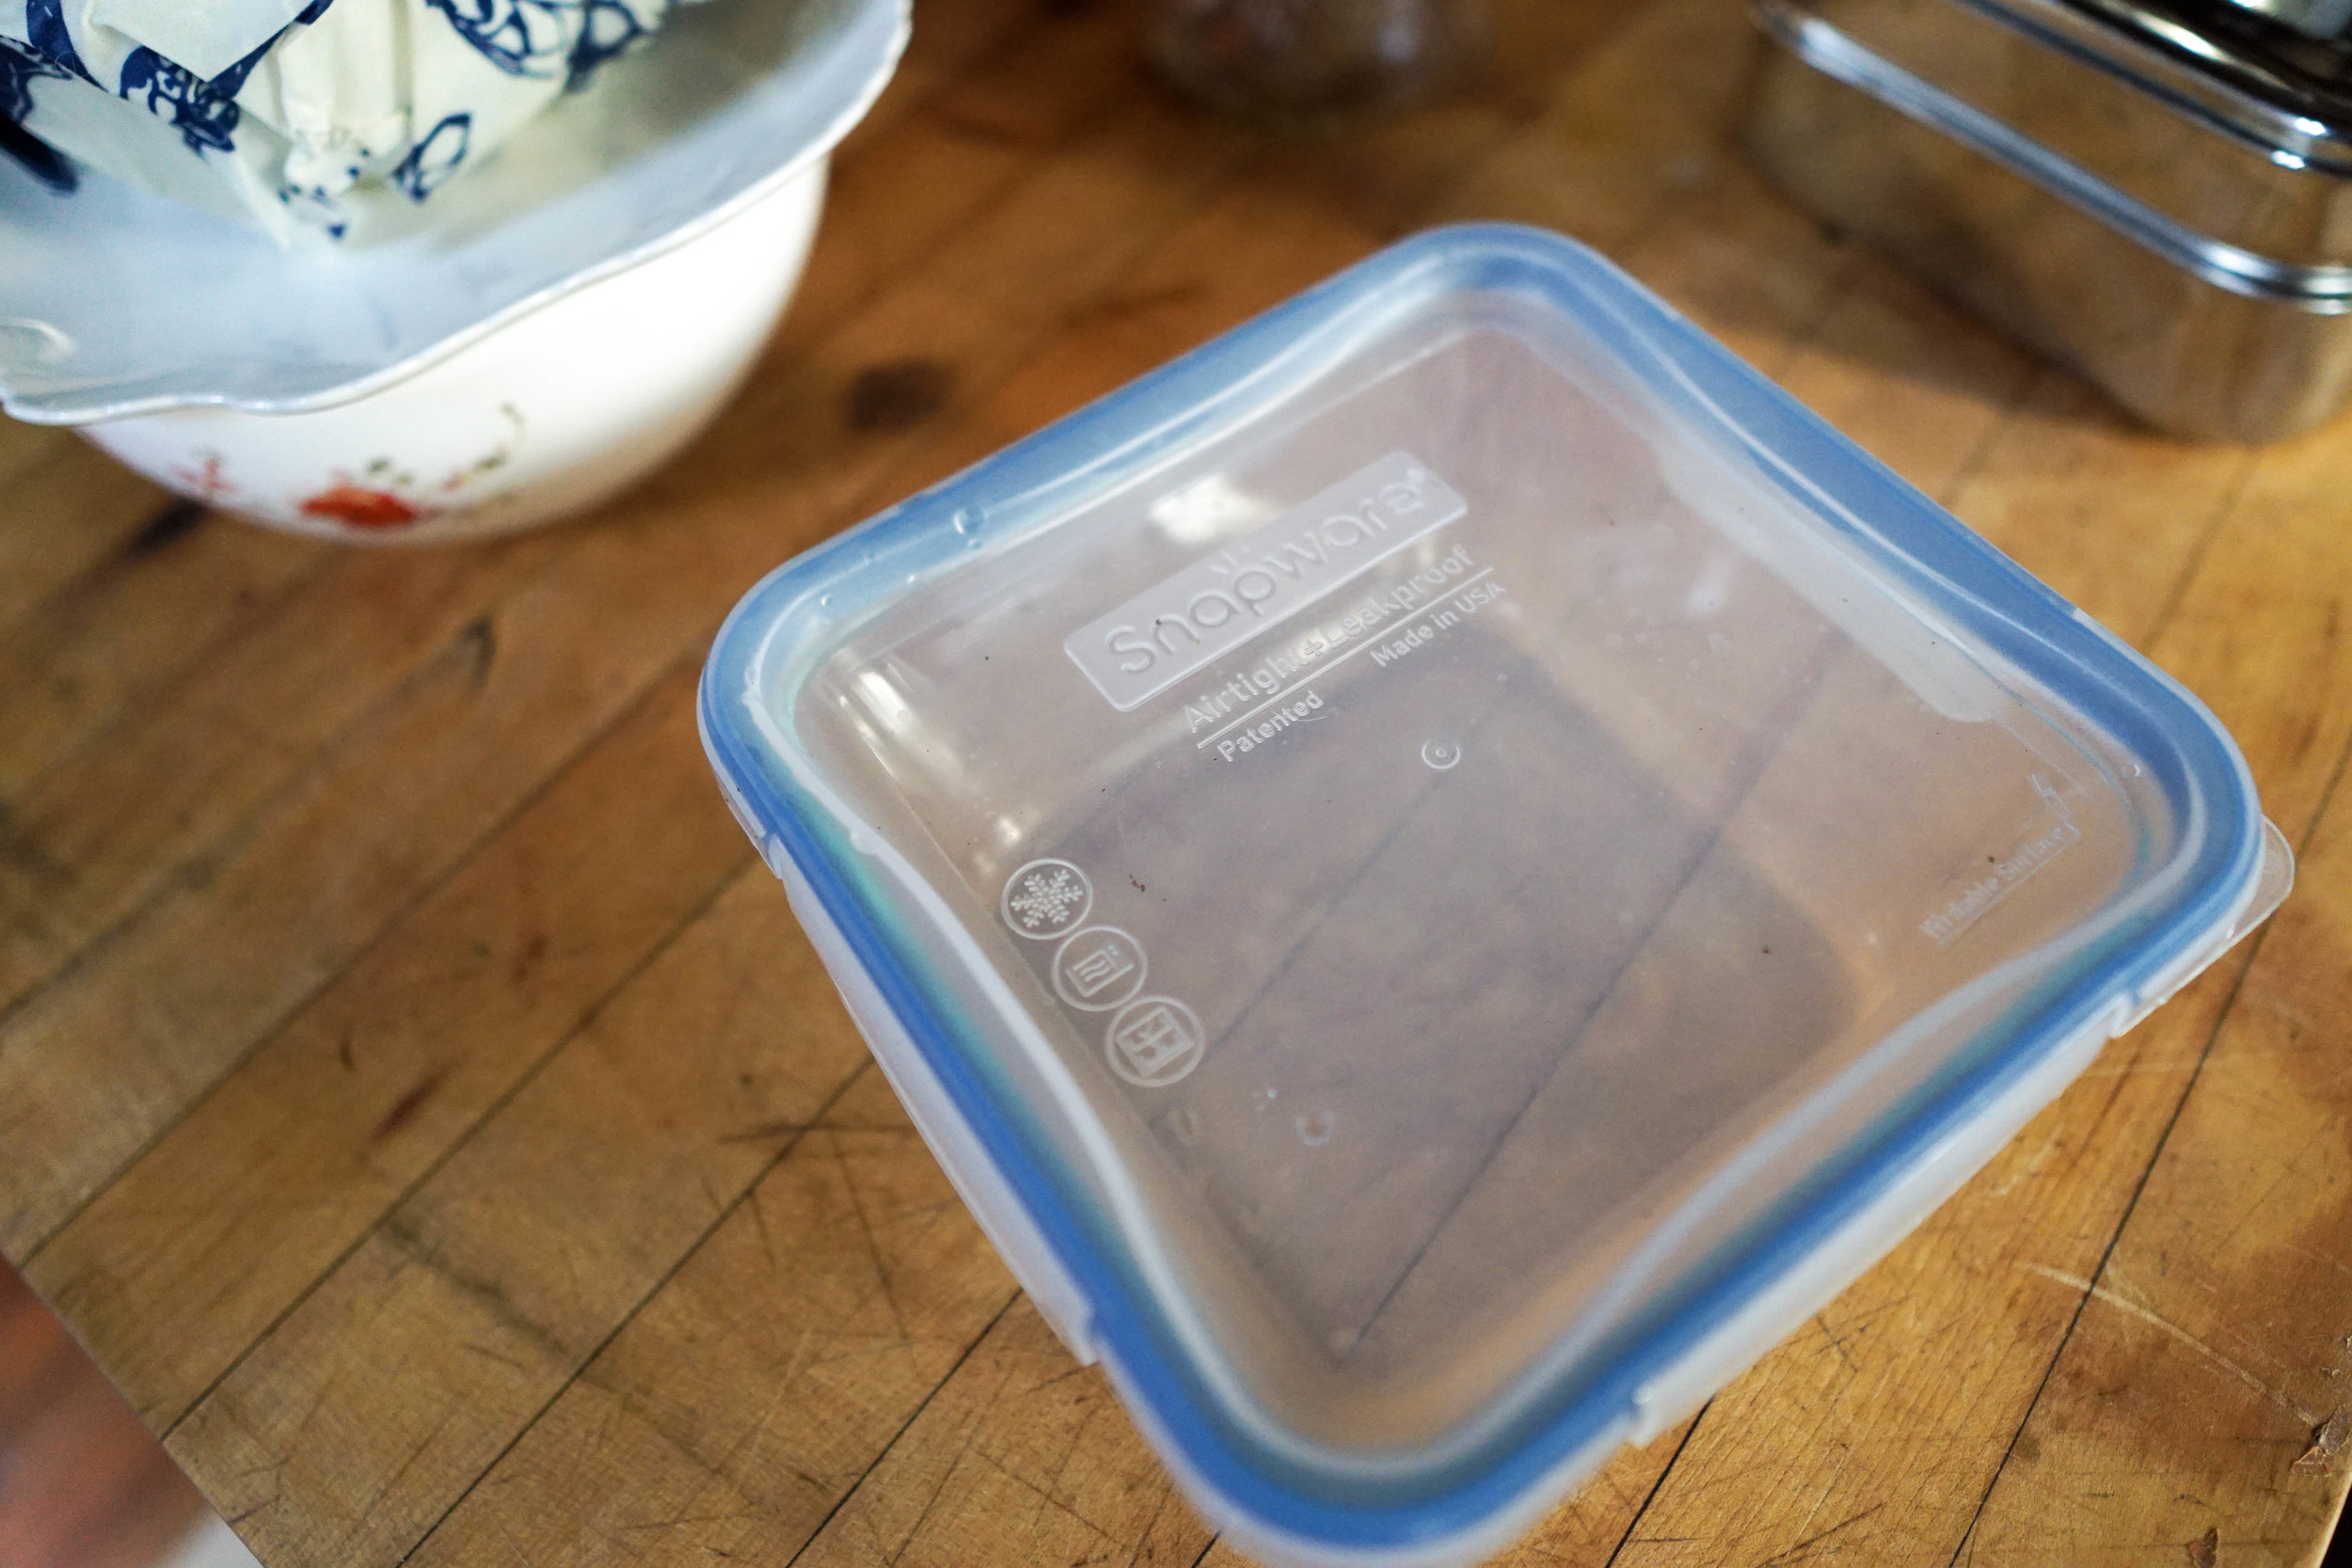 8 ways to store leftovers without plastic from www.goingzerowaste.com #zerowaste #plasticfree #leftovers